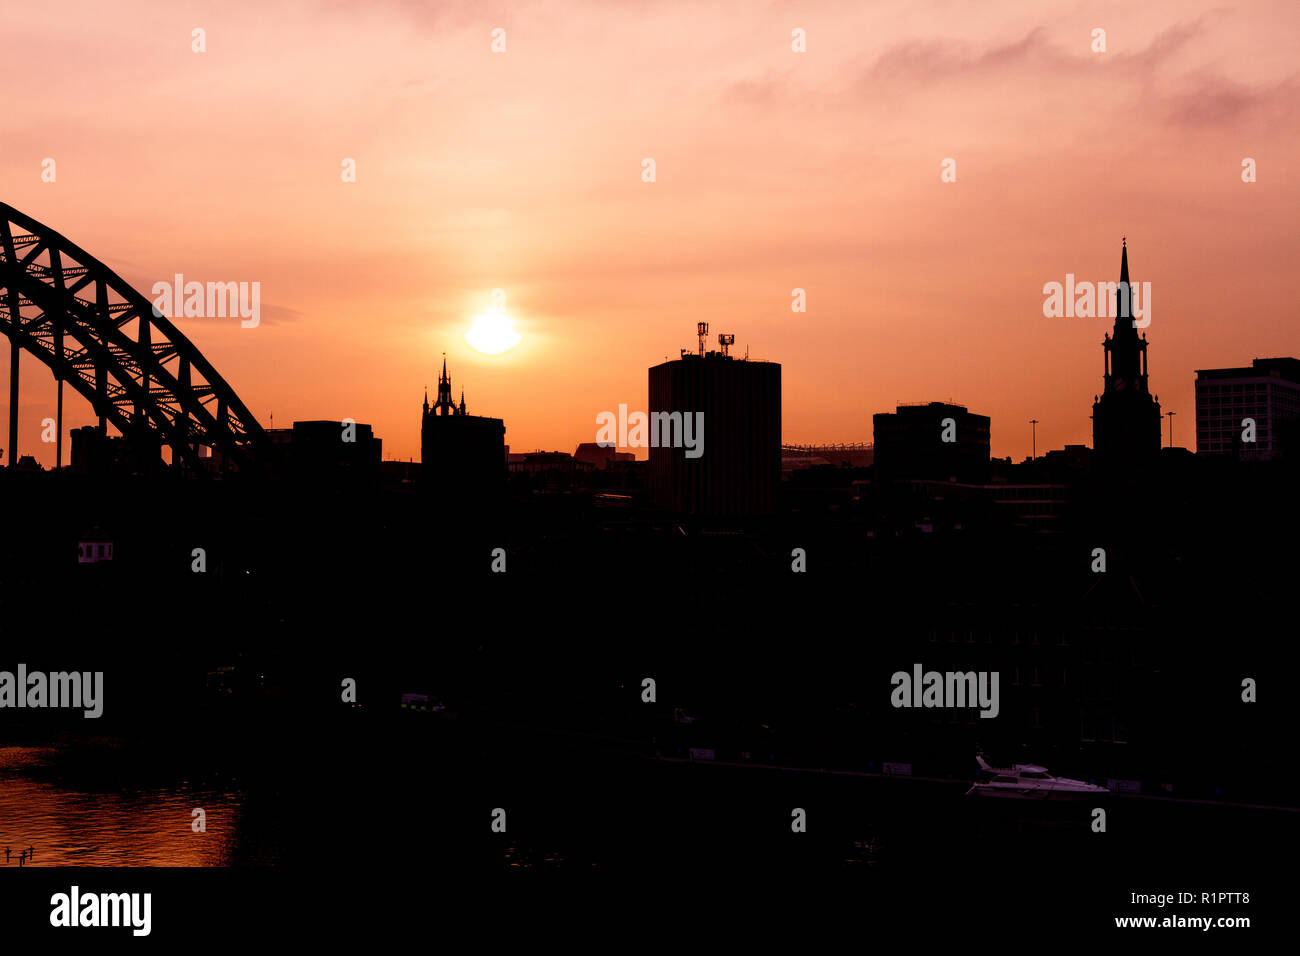 Newcastle upon Tyne/England - Tyne bridge and Newcastle skyline at sunset in silhouette Stock Photo